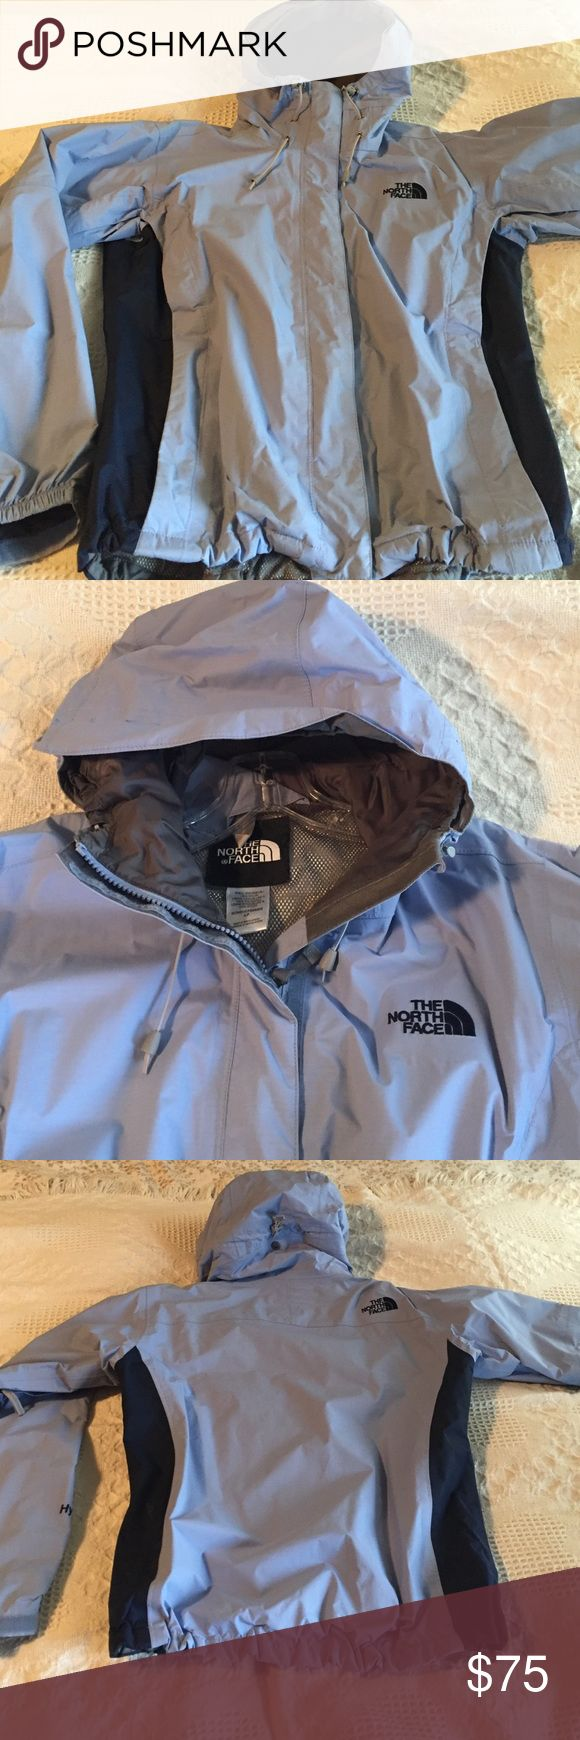 North Face Jacket Women's North Face lightweight shell rain resistant jacket. Beautiful limited edition periwinkle light blue color with navy color panels down sides under arms and for logo. This jacket features the North Face standard shell zipper meaning this jacket can be worn alone or zipped into a heavier style jacket for added warmth. Like new condition, no signs of wear. North Face Jackets & Coats Utility Jackets